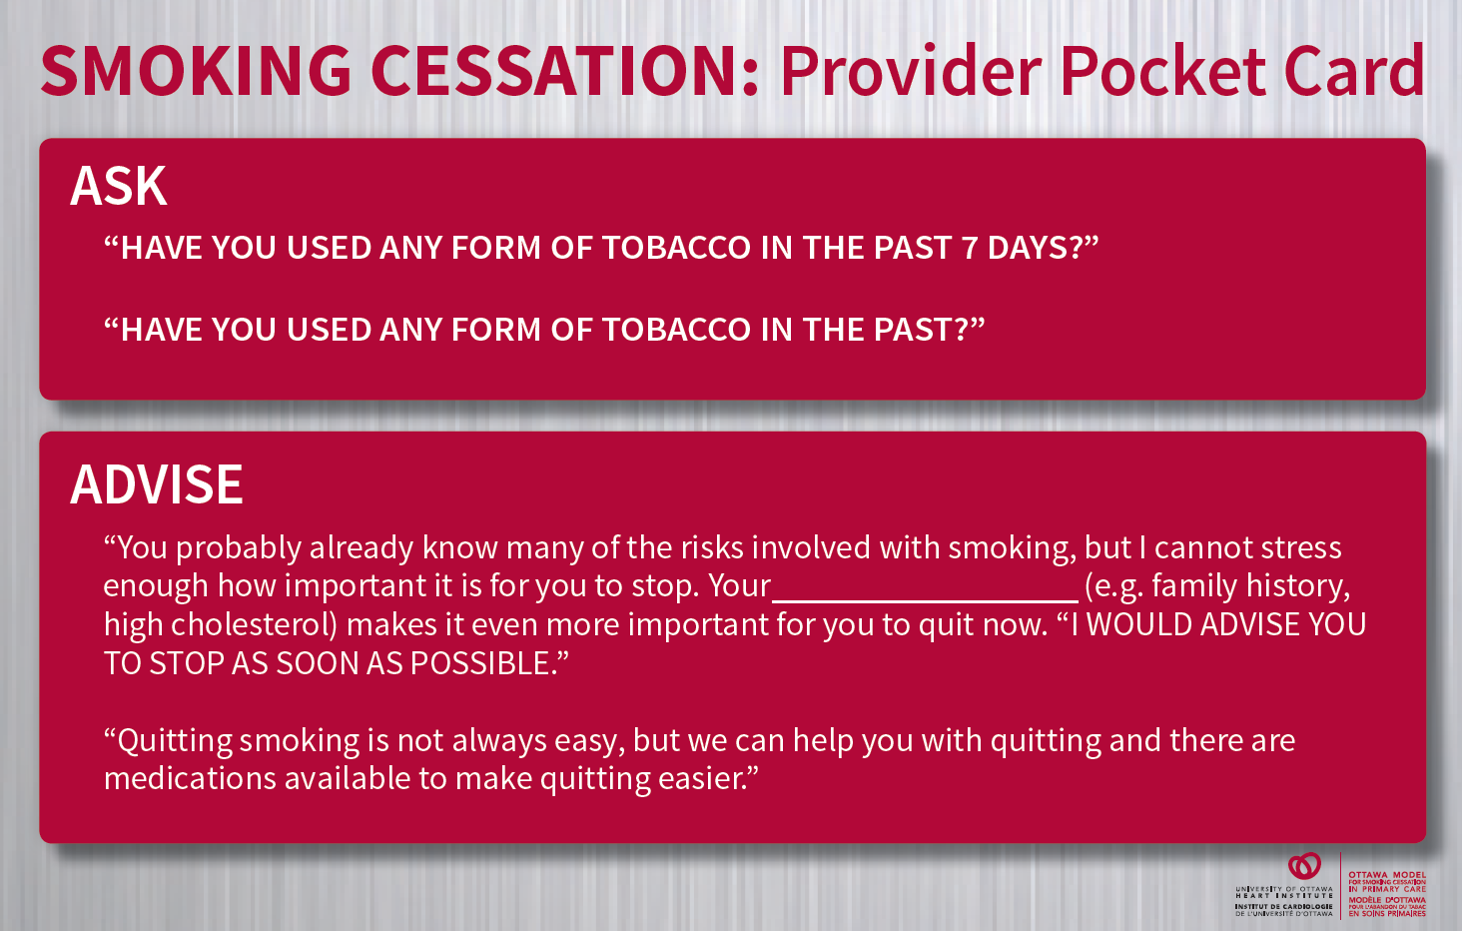 an image of the downloadable omsc health care provider pocket card